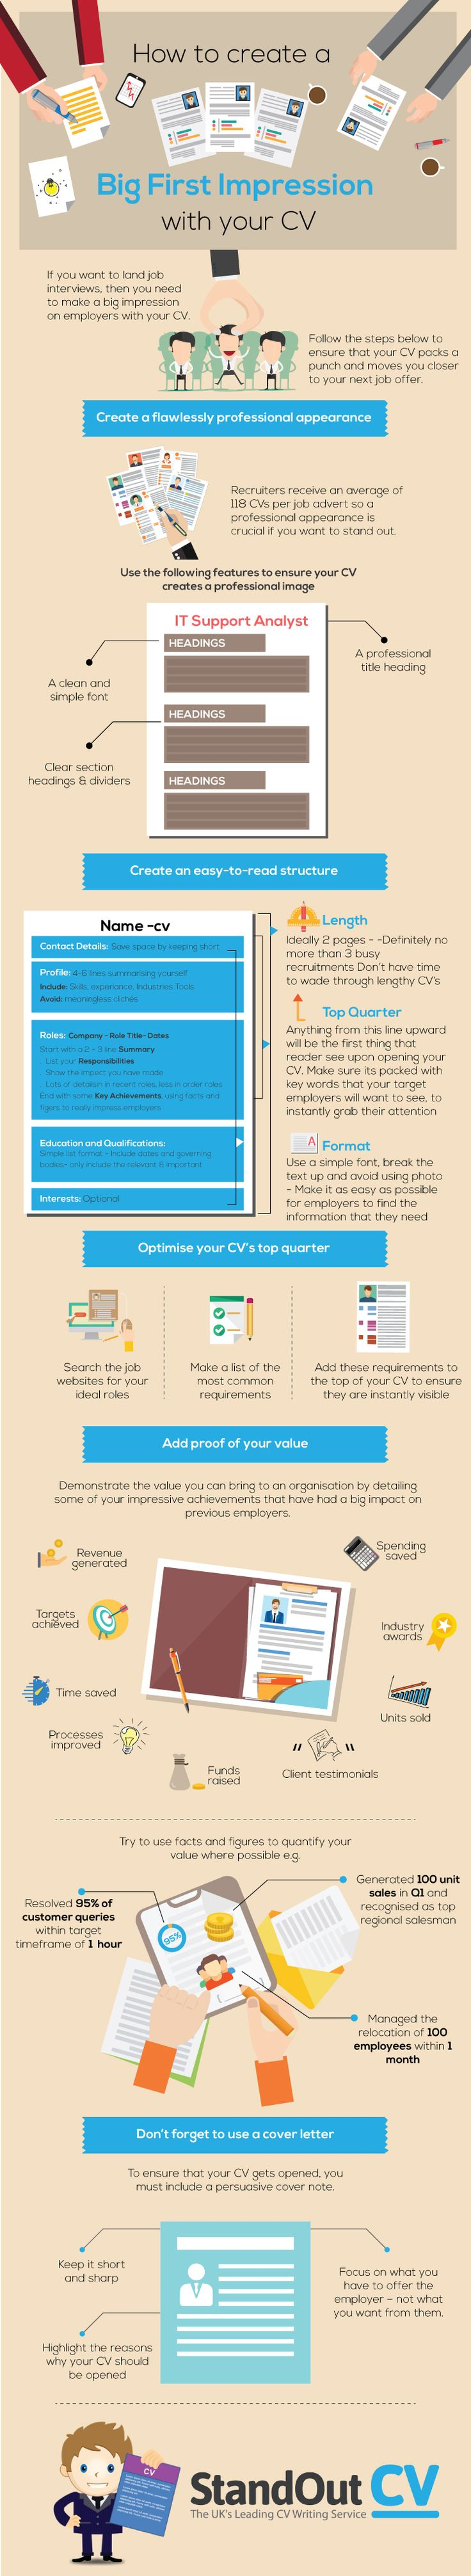 How To Make a Big Impression With Your CV #Infographic #Career #Resume